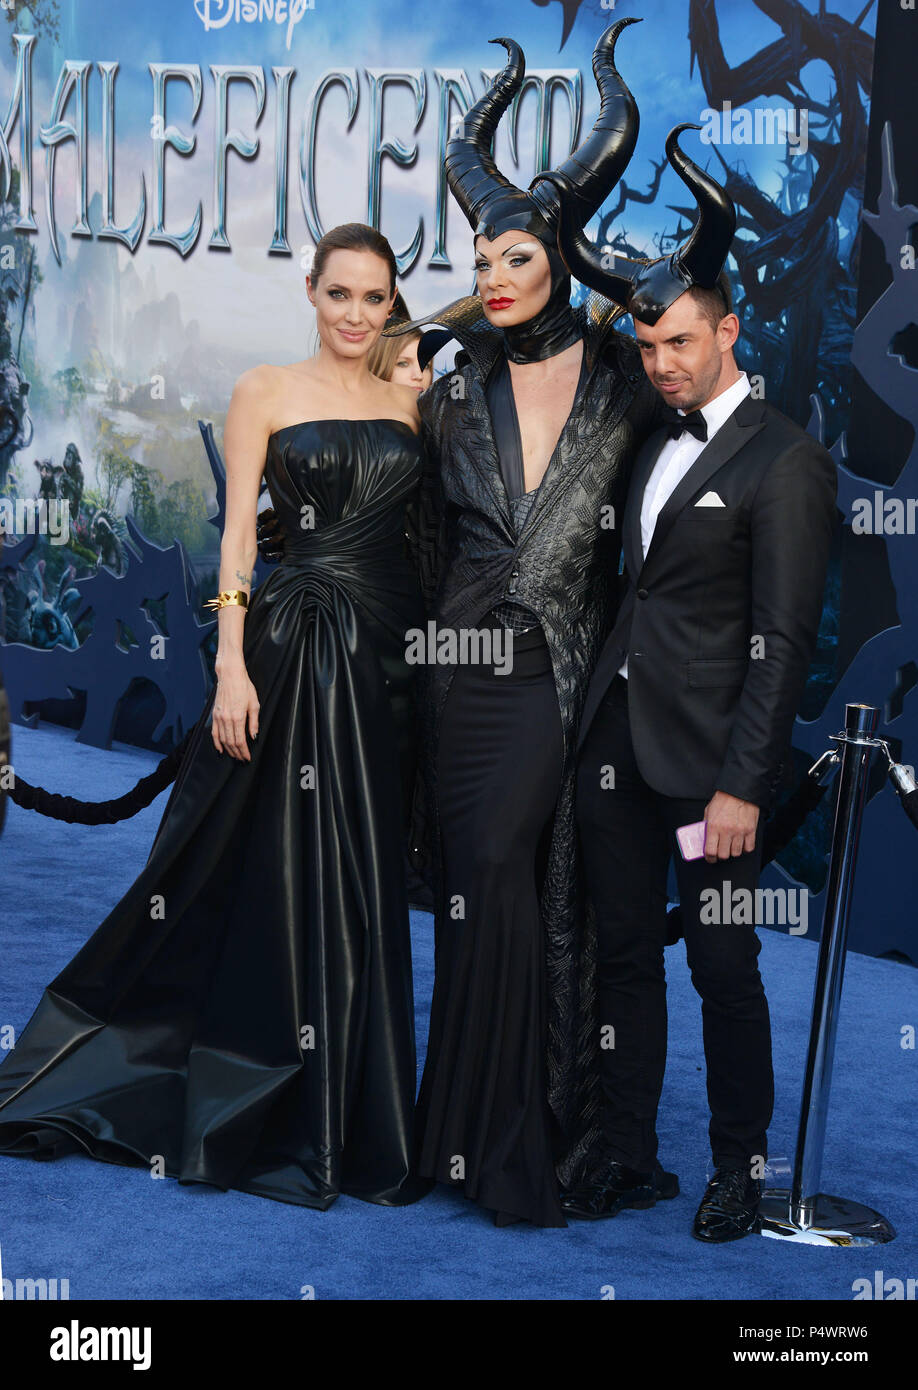 Angelina Jolie At The Maleficent Premiere At The El Capitan